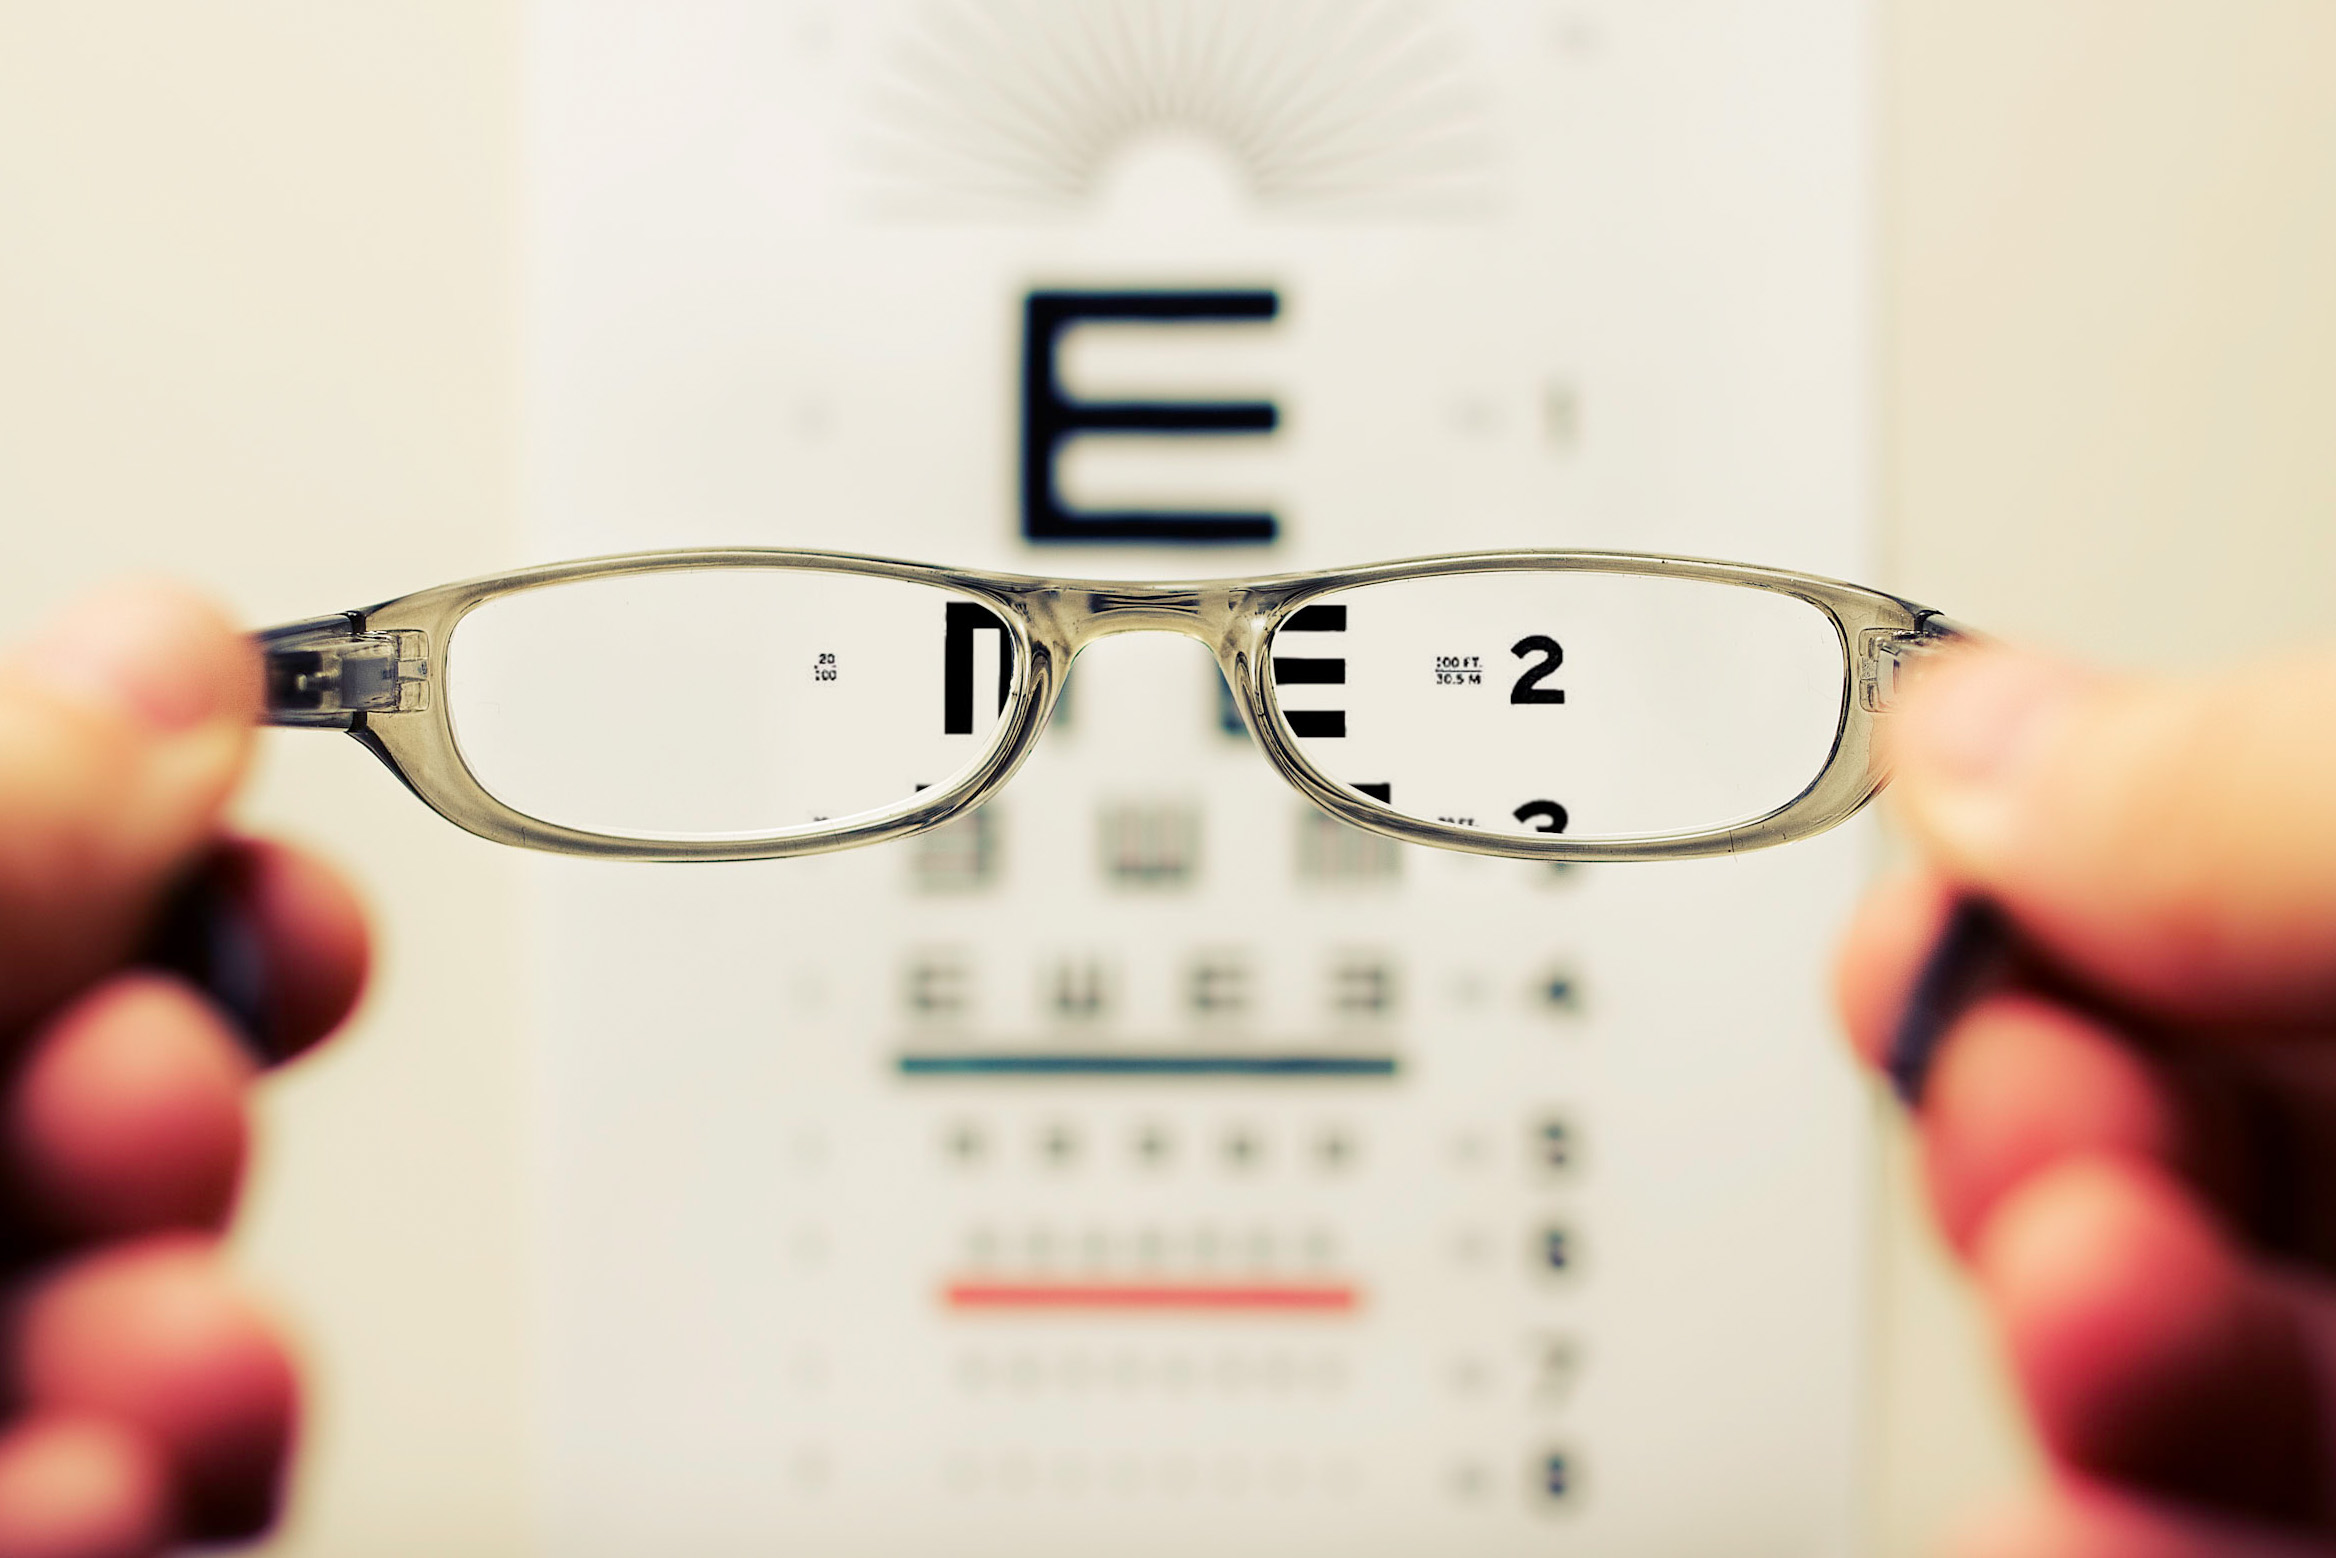 Private eye tests - We carry out meticulous eye consultations with care and support.